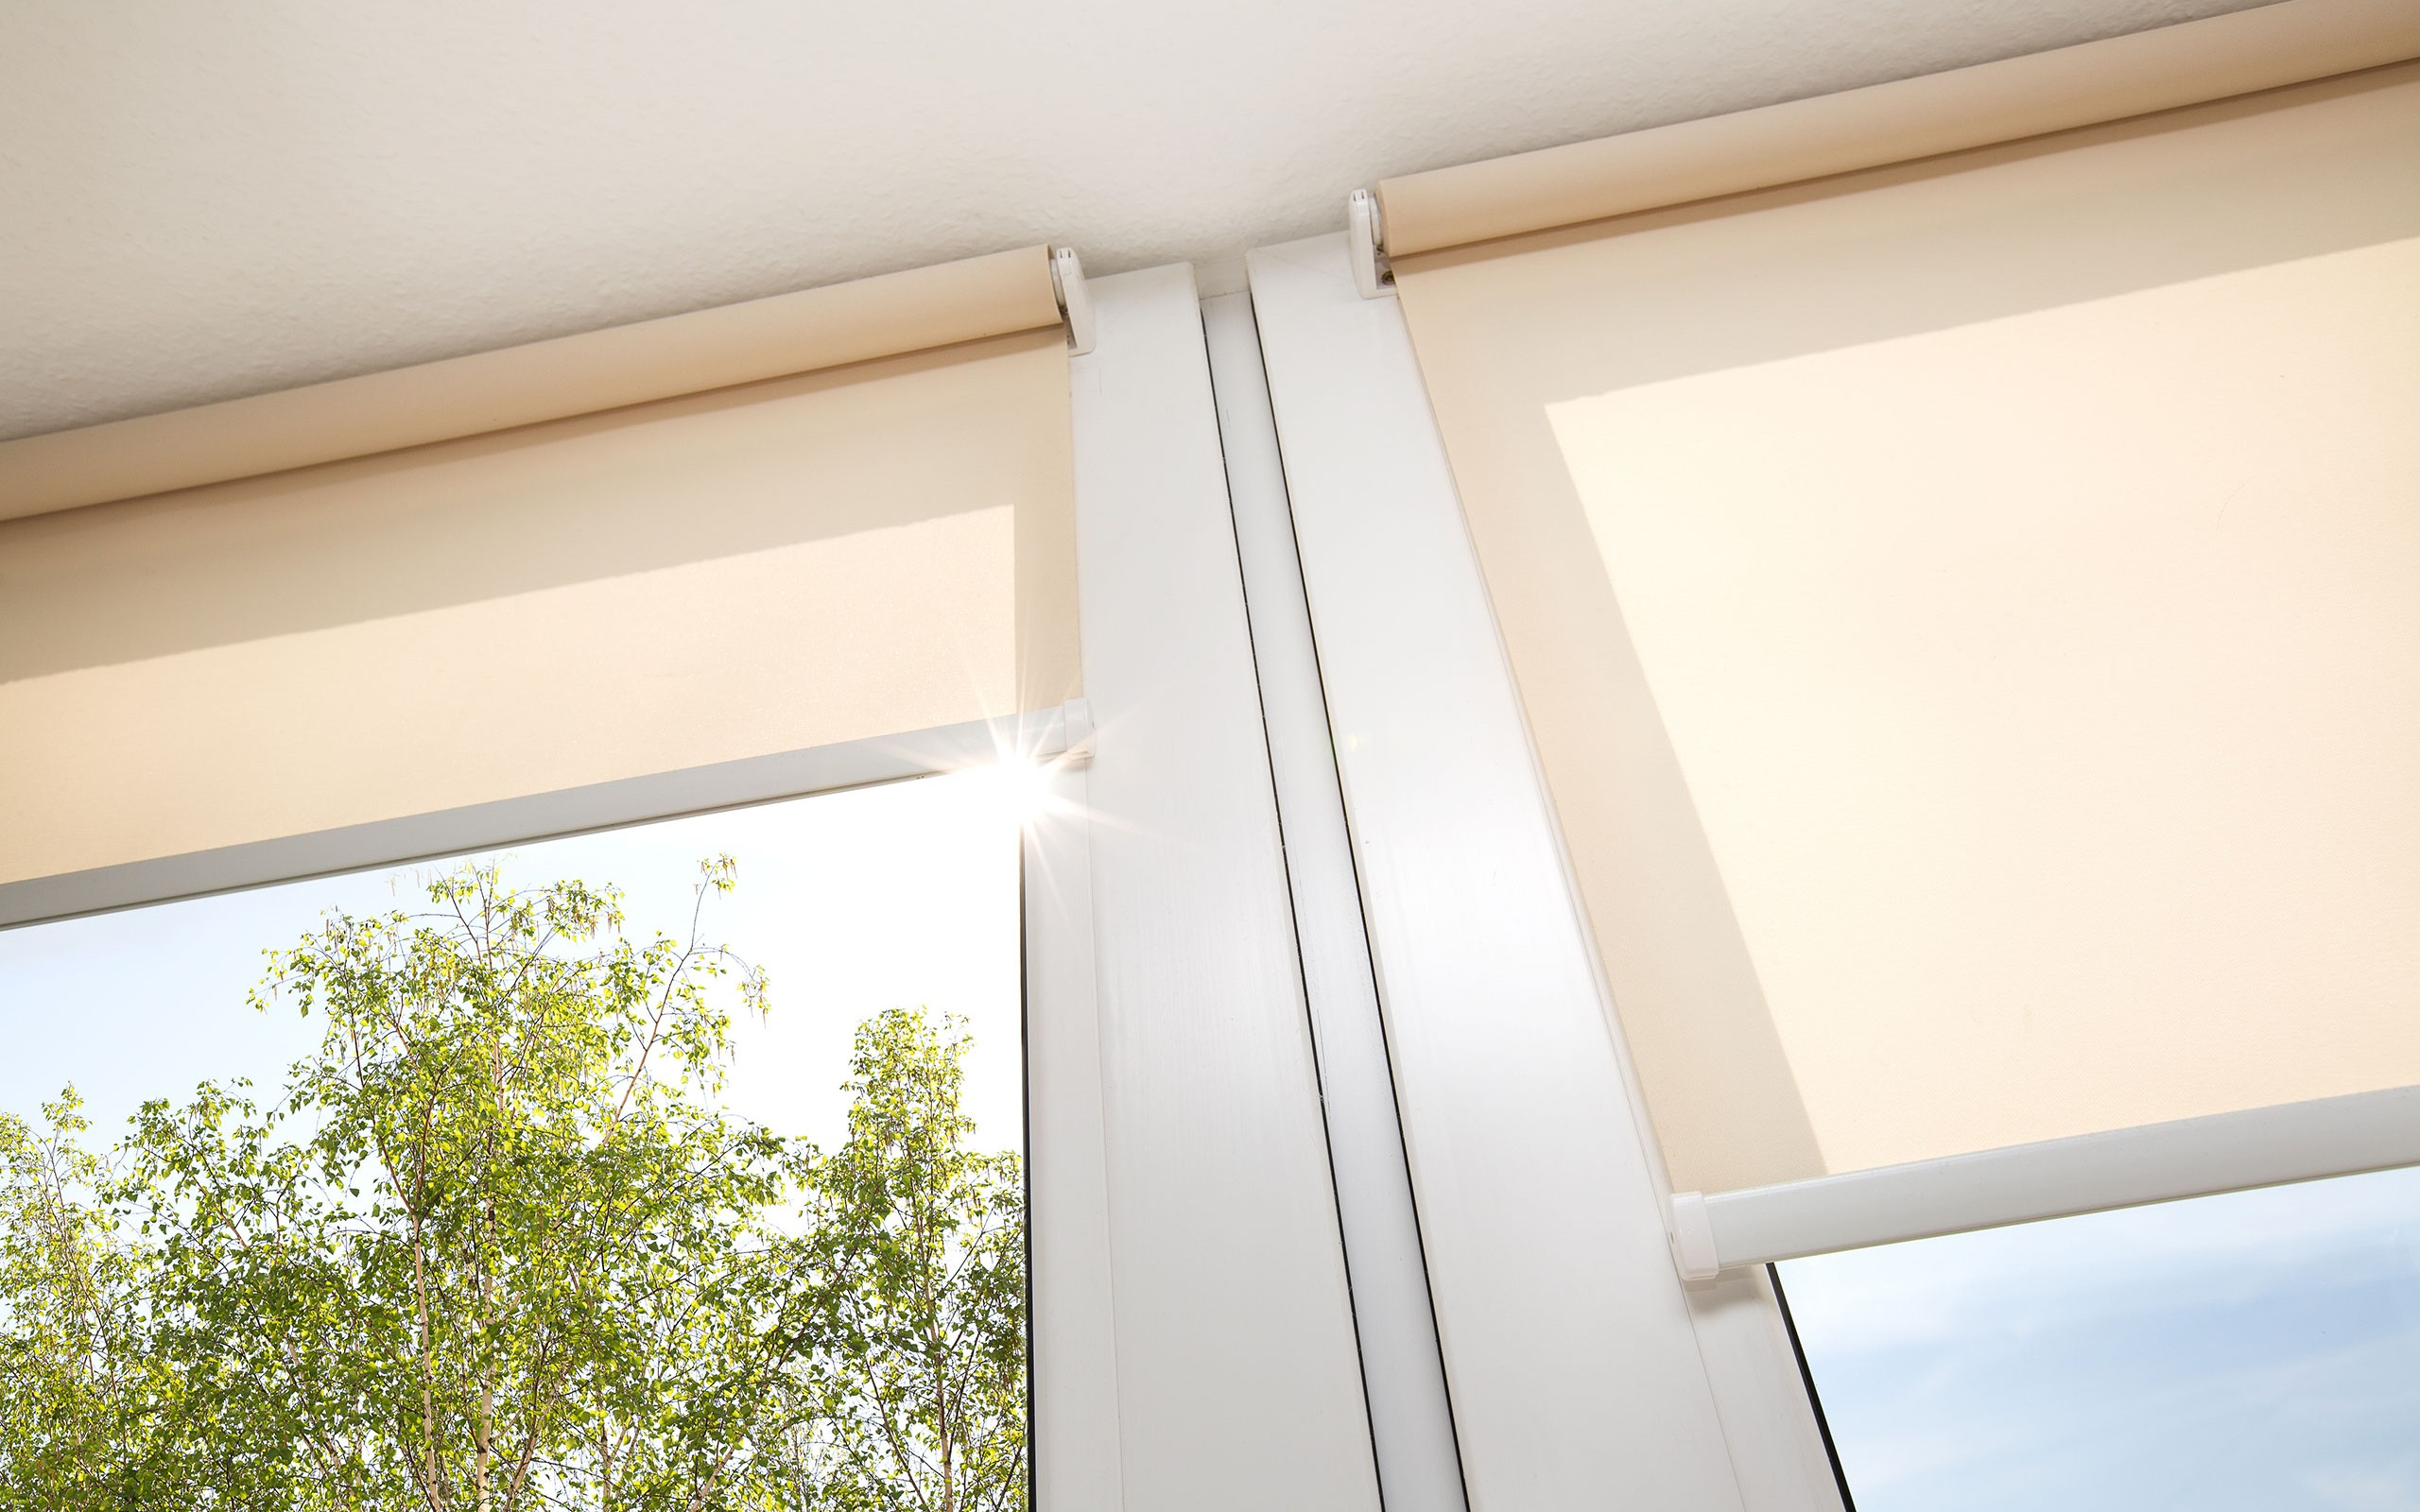 A bright window with light beige roller shades partially covering window facing green tree and sun